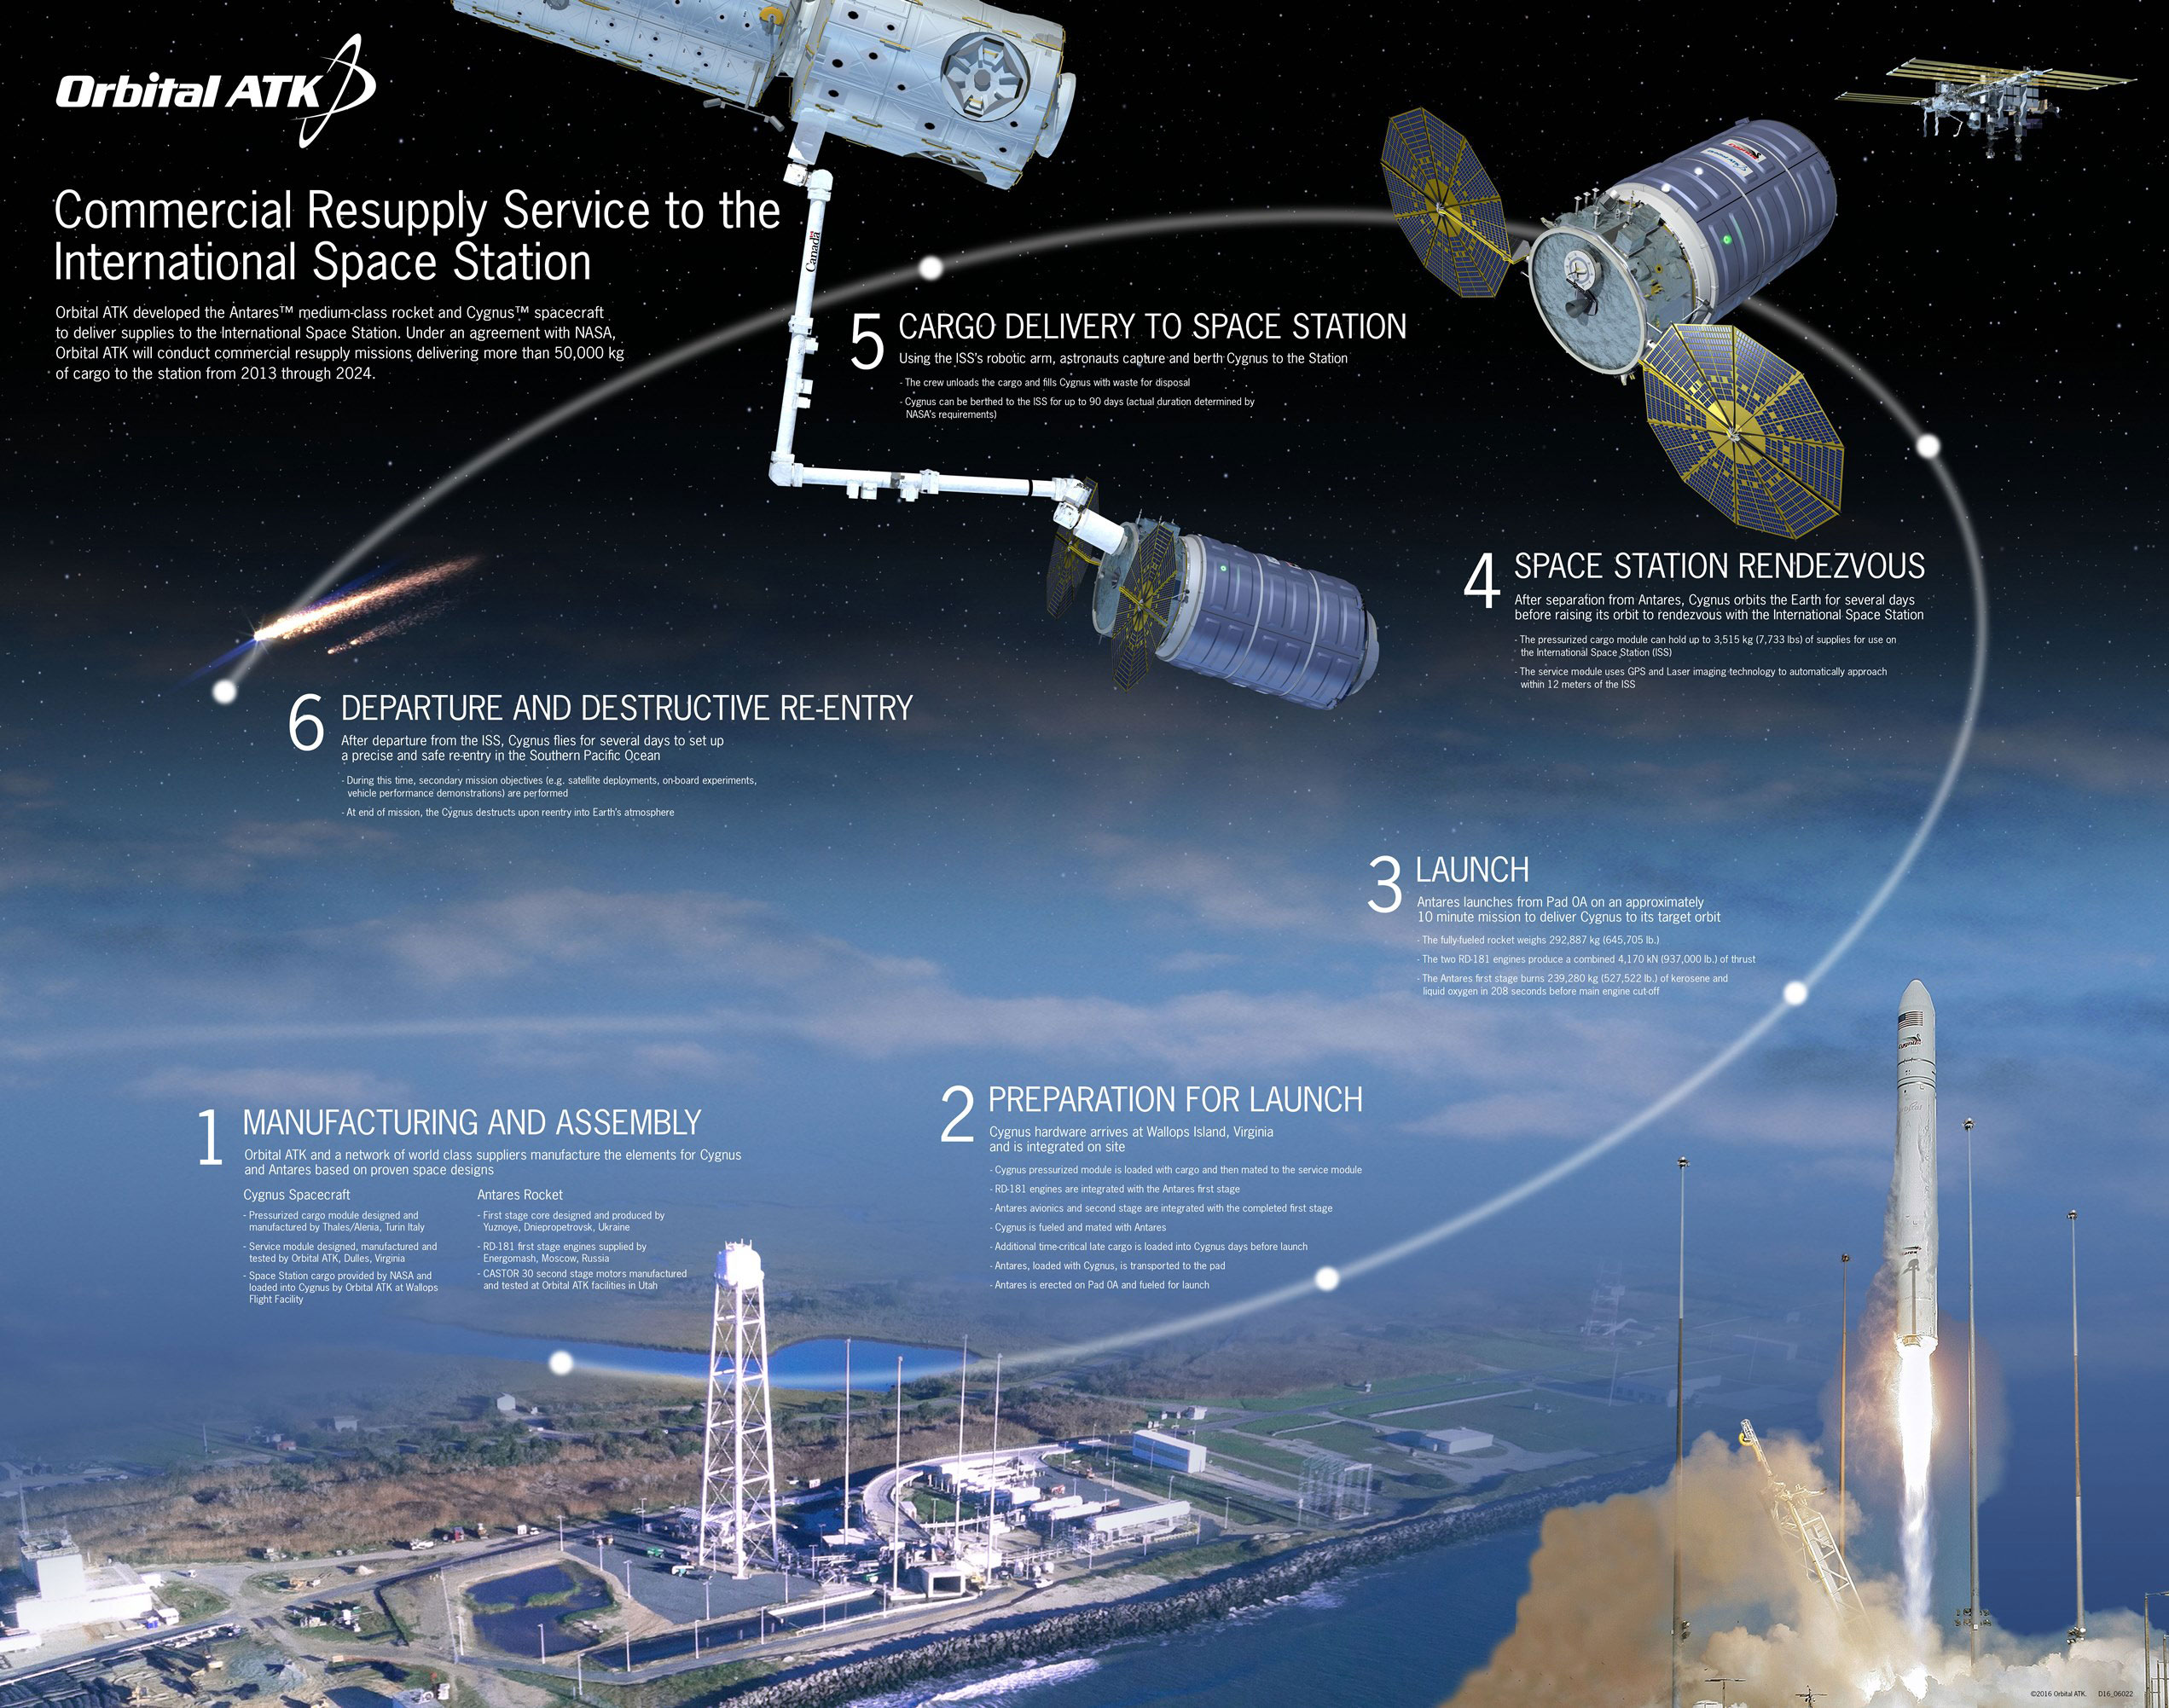 Cygnus Mission Profile - Credit: Orbital ATK